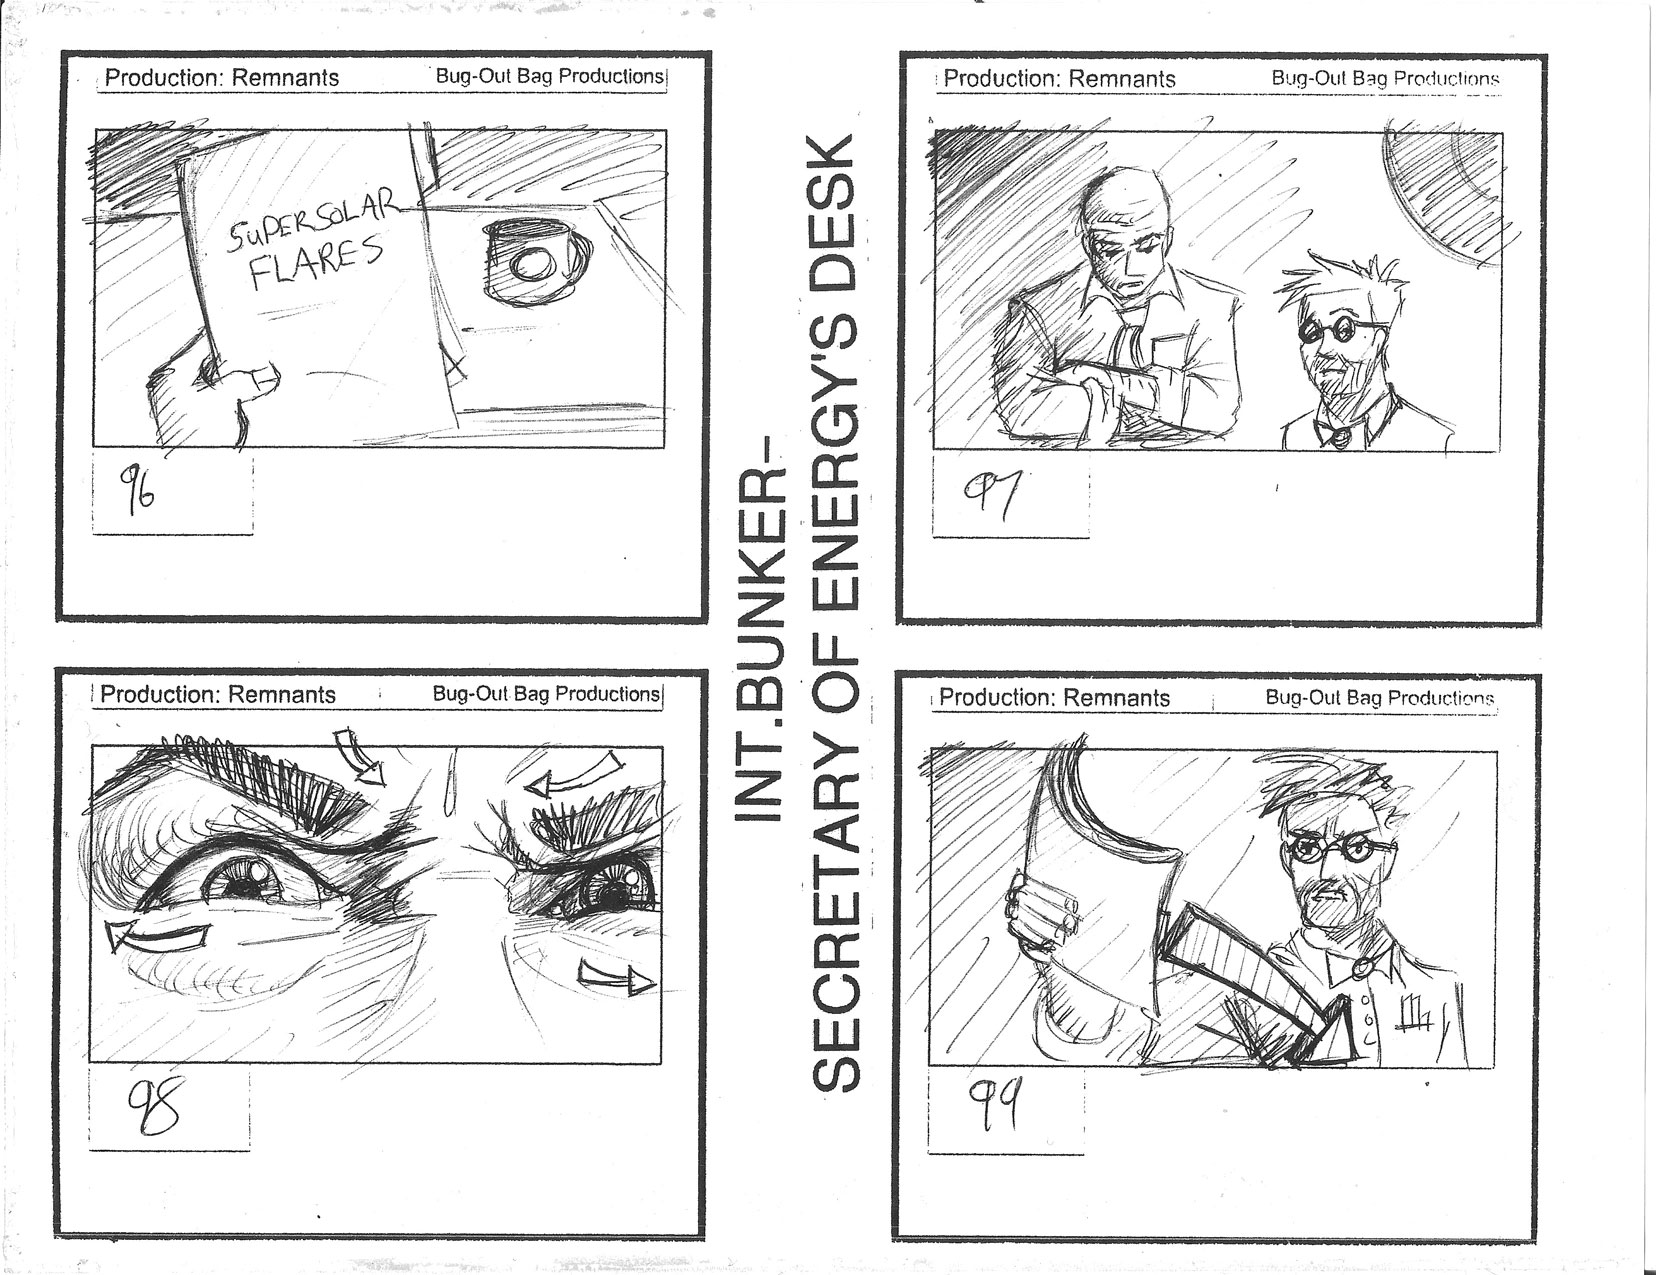 Remnants_storyboards_036.jpg